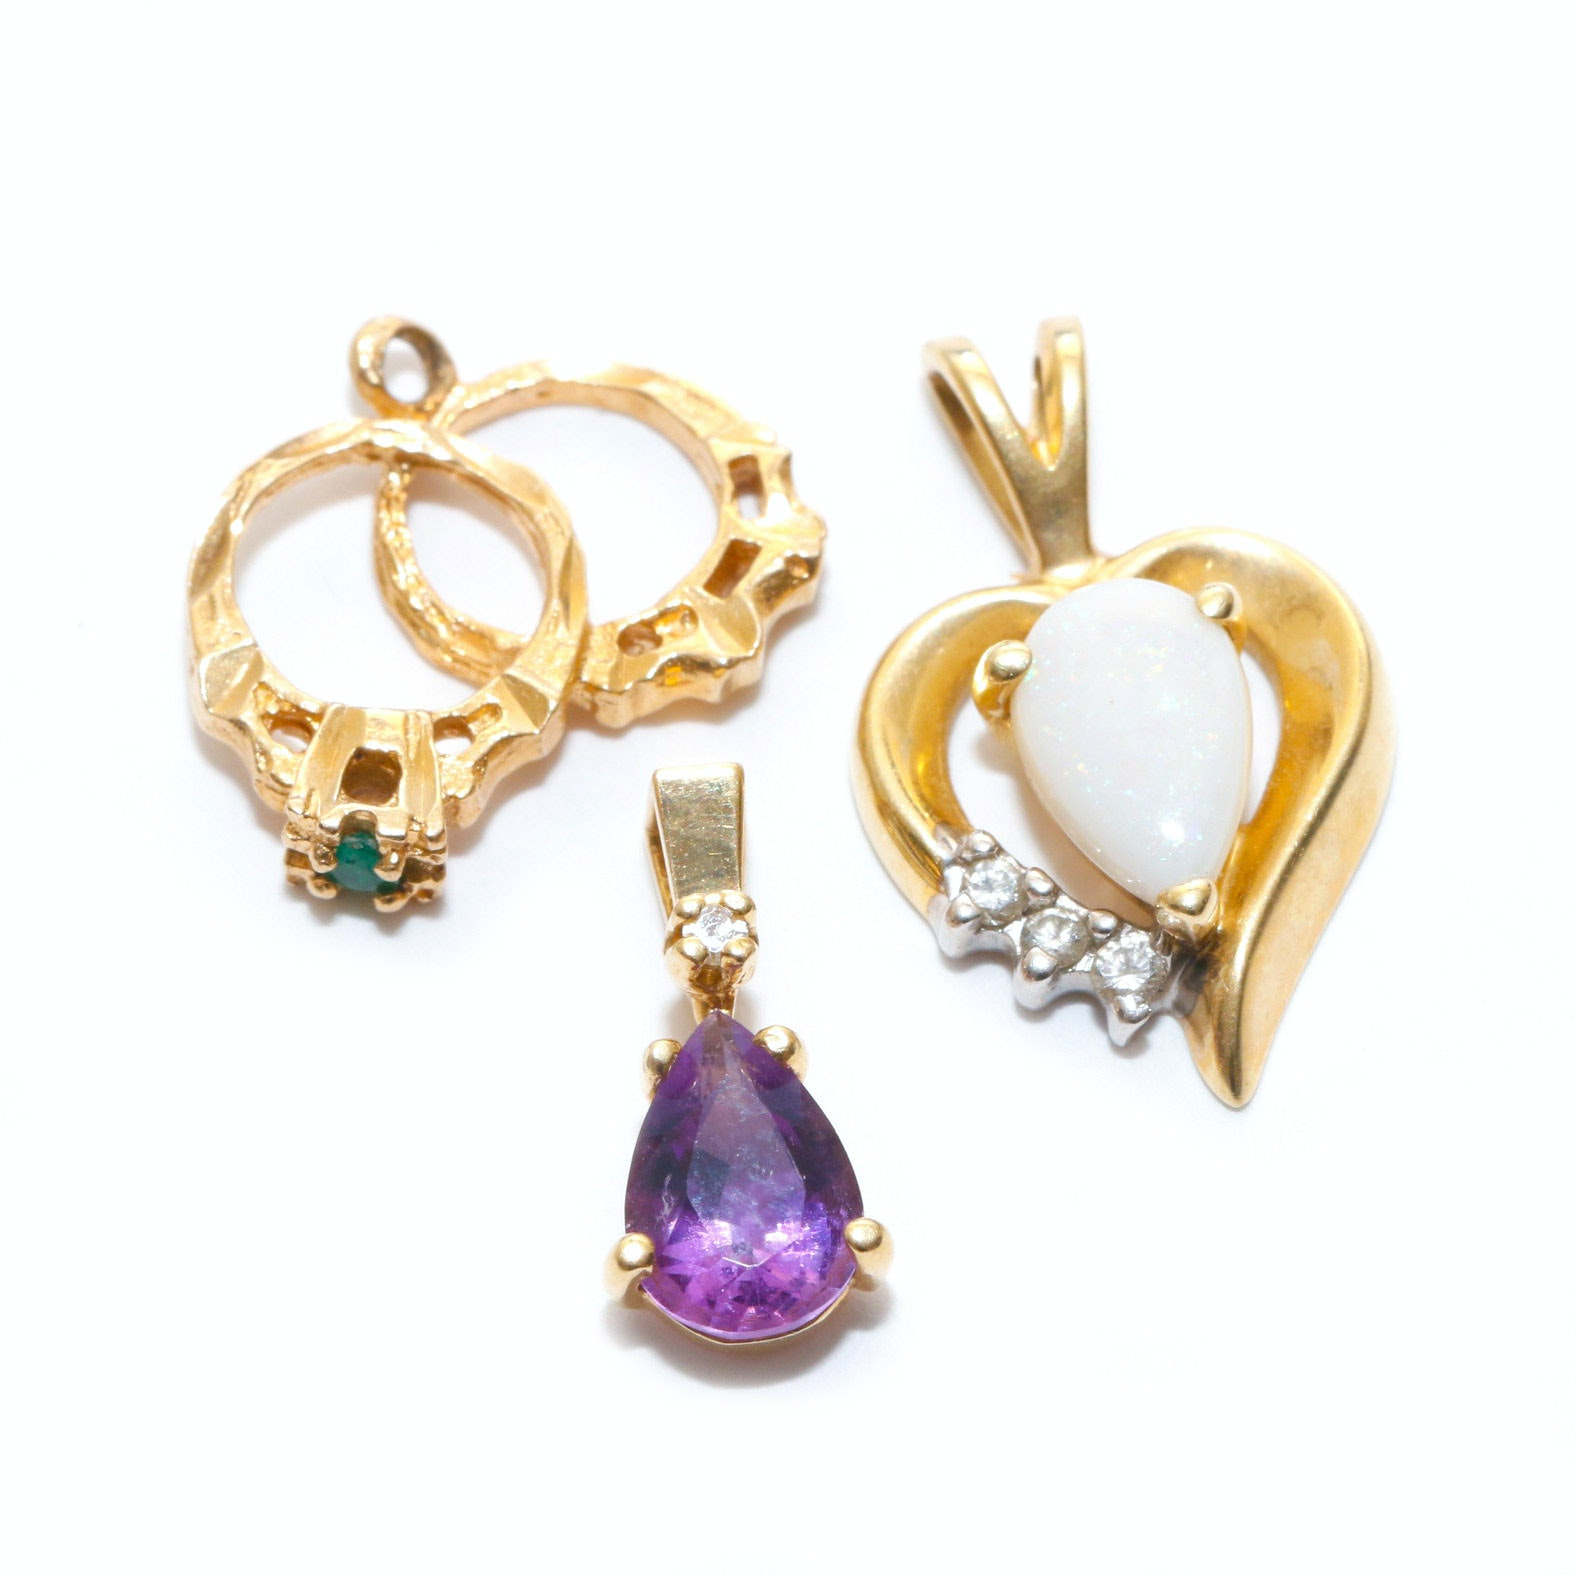 Three 14K Yellow Gold Gemstone Pendants